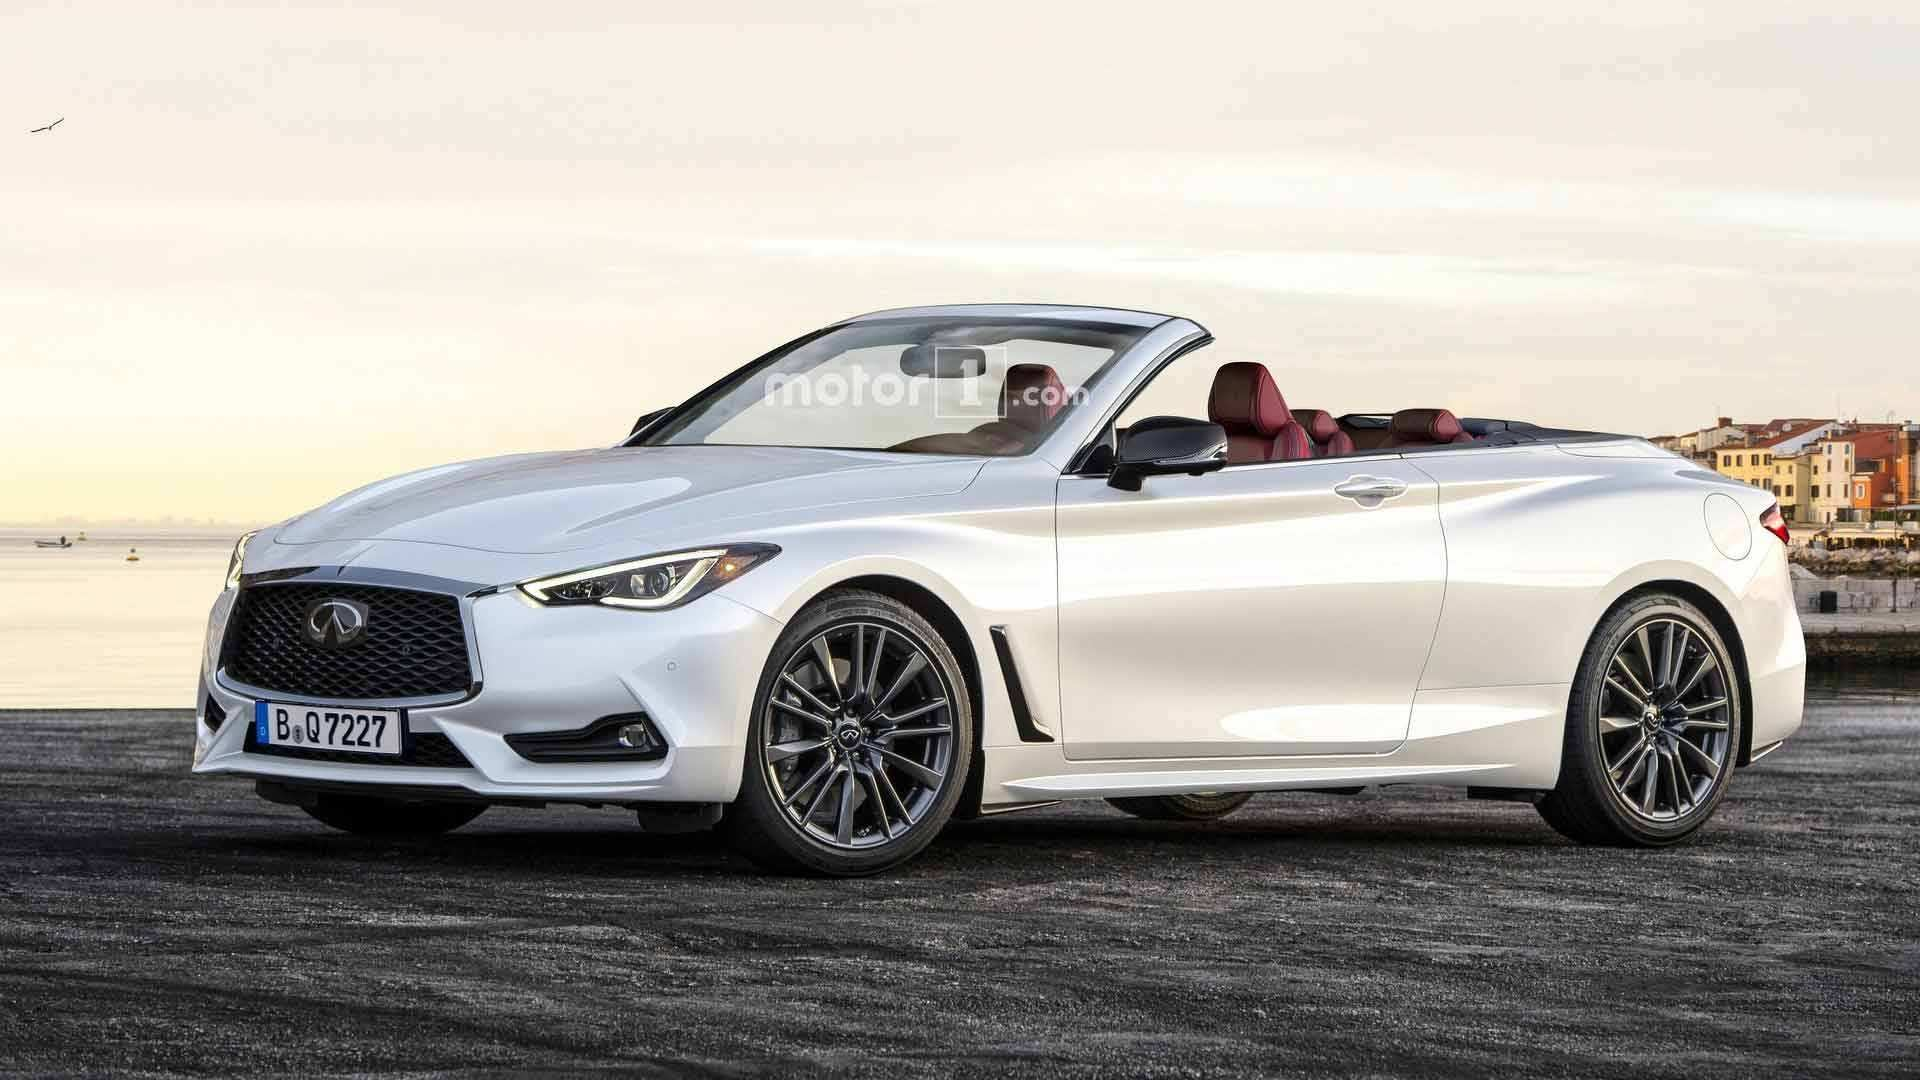 74 The Best 2020 Infiniti Q60s Picture